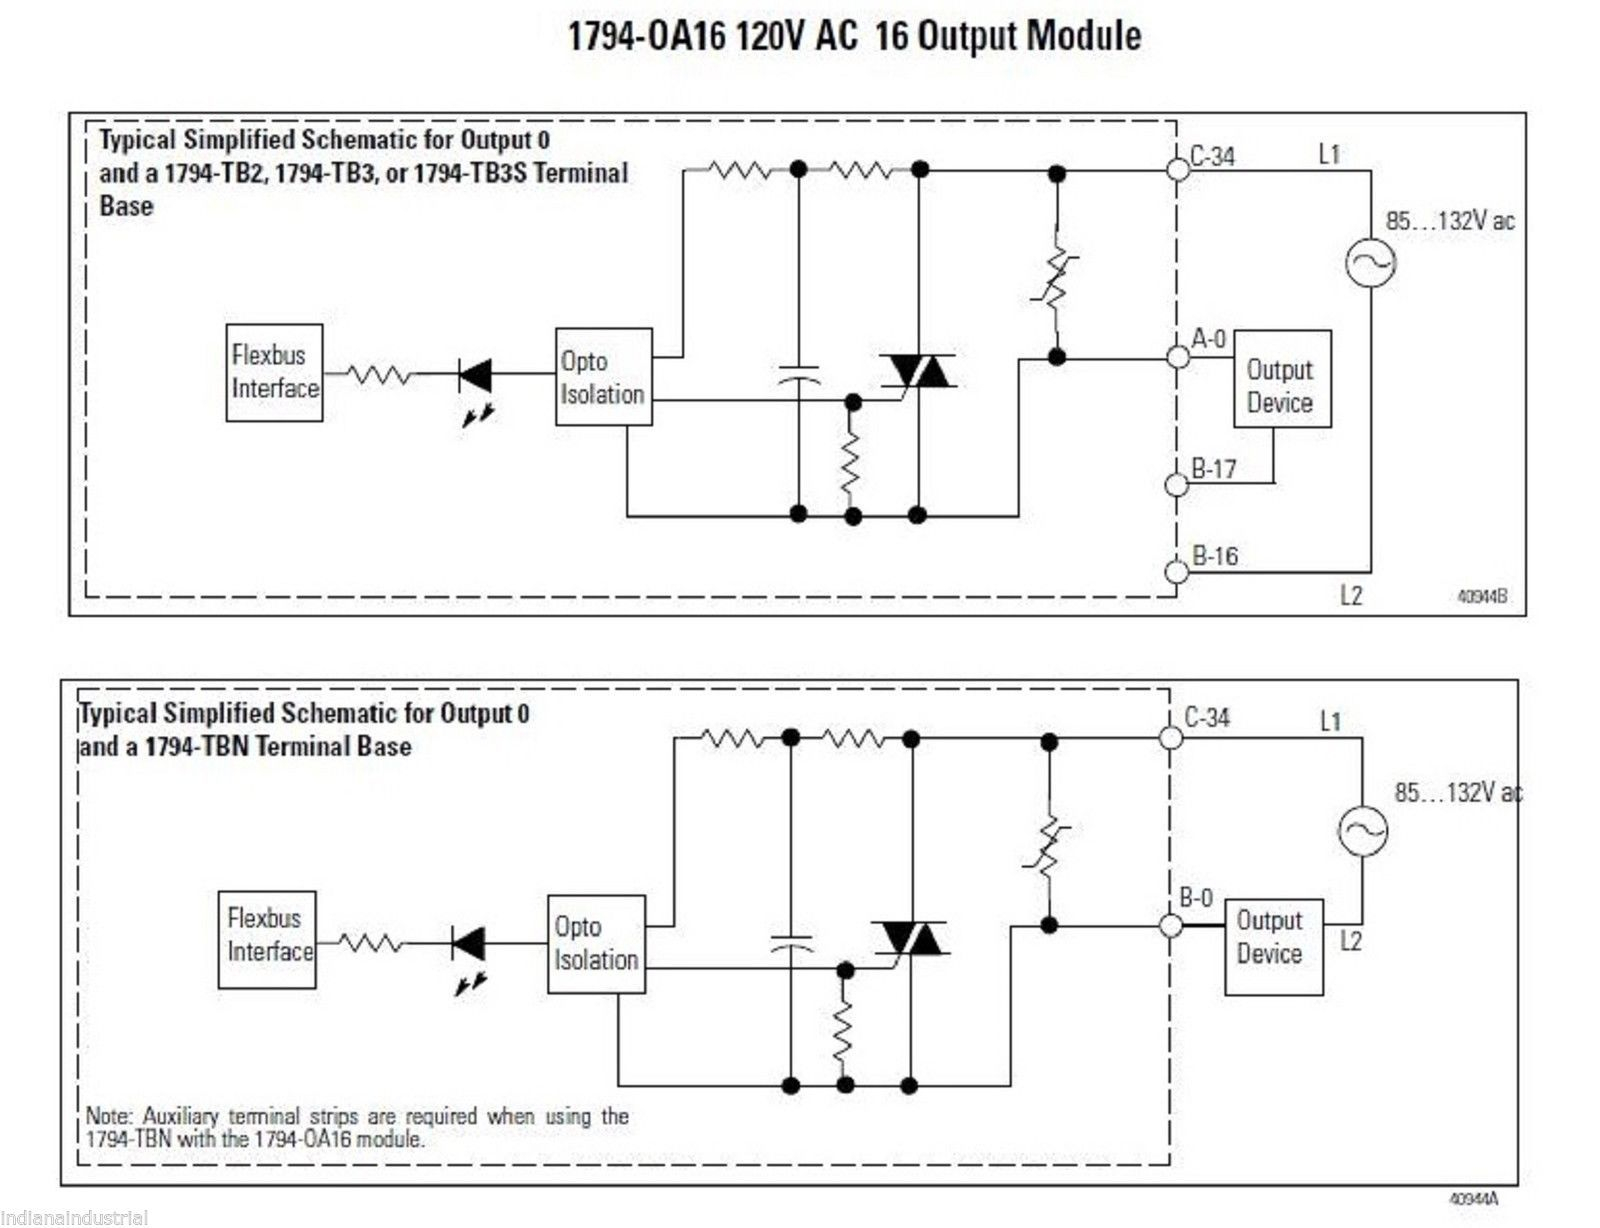 allen bradley 1794 ib16 wiring diagram Download-Fine 1756 If6i Wiring  Diagram Educational Engine Diagram